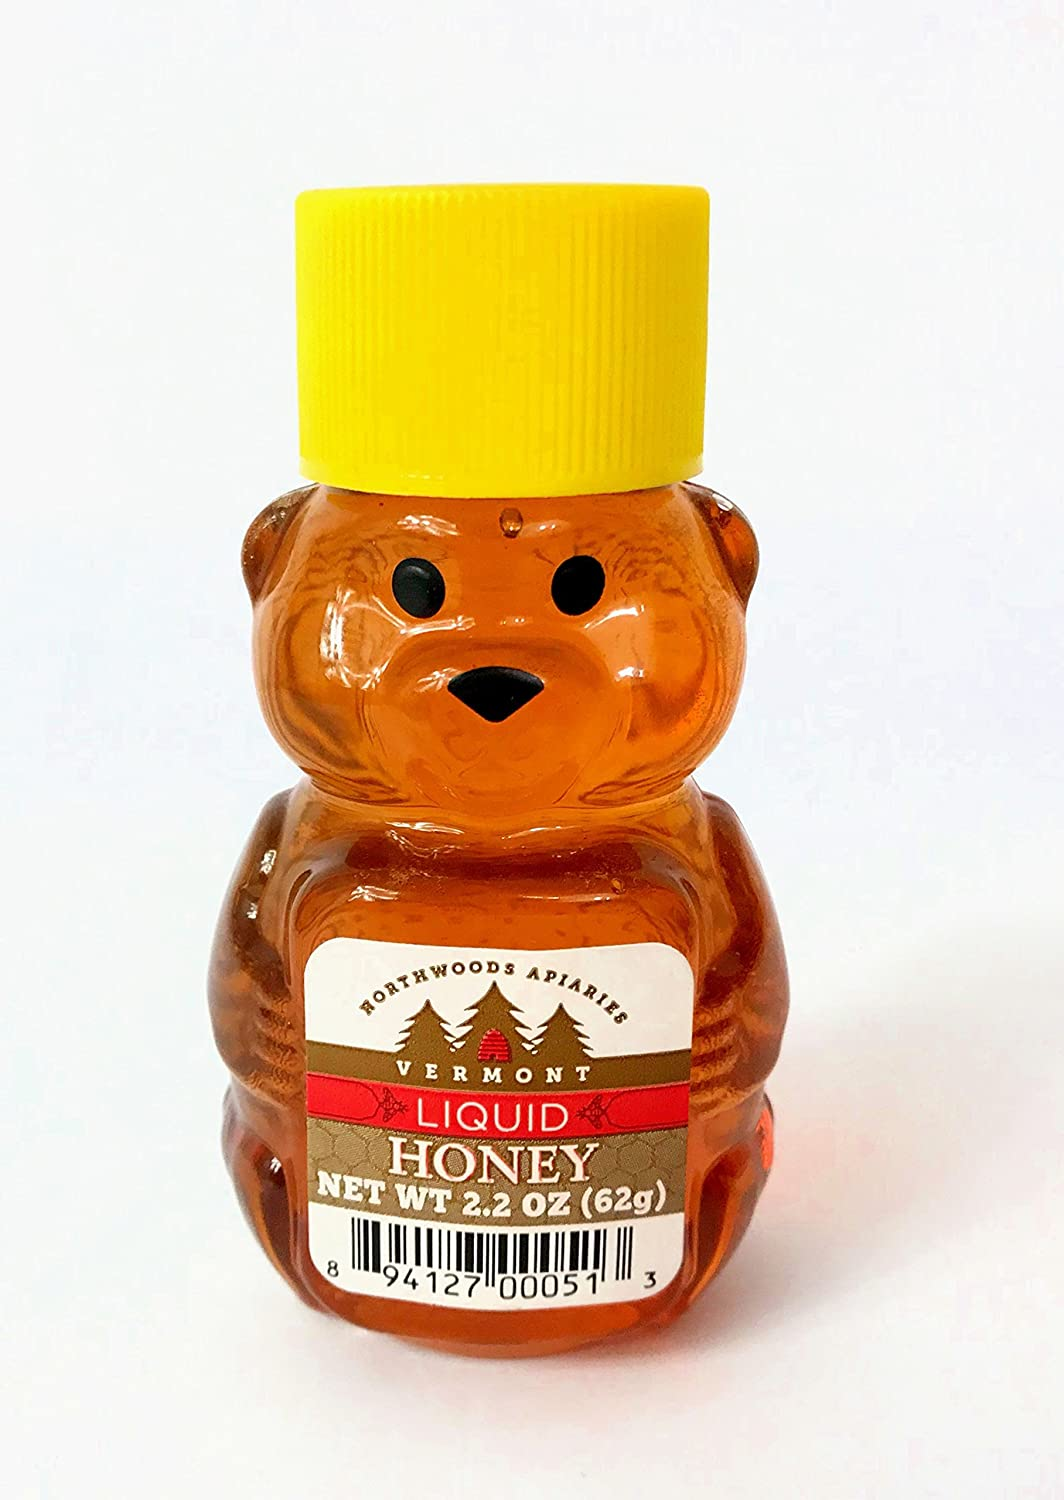 Amazon.com : Vermont Pure Organic Honey Mama Baby Bear cub squeeze bottles : Grocery & Gourmet Food